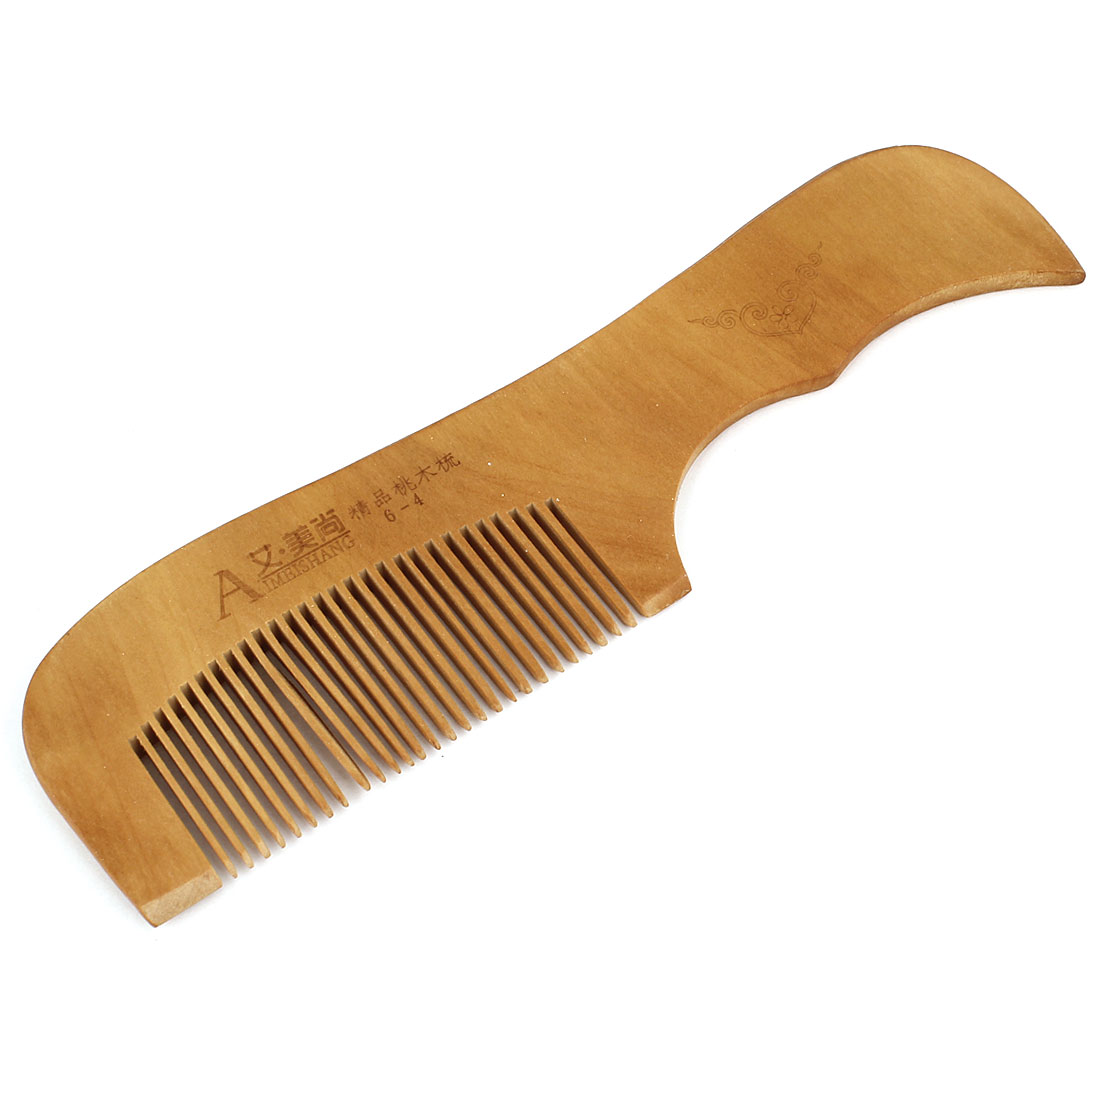 Men Women Hairdressing Makeup Tool Wooden Wide Toothed Hair Comb